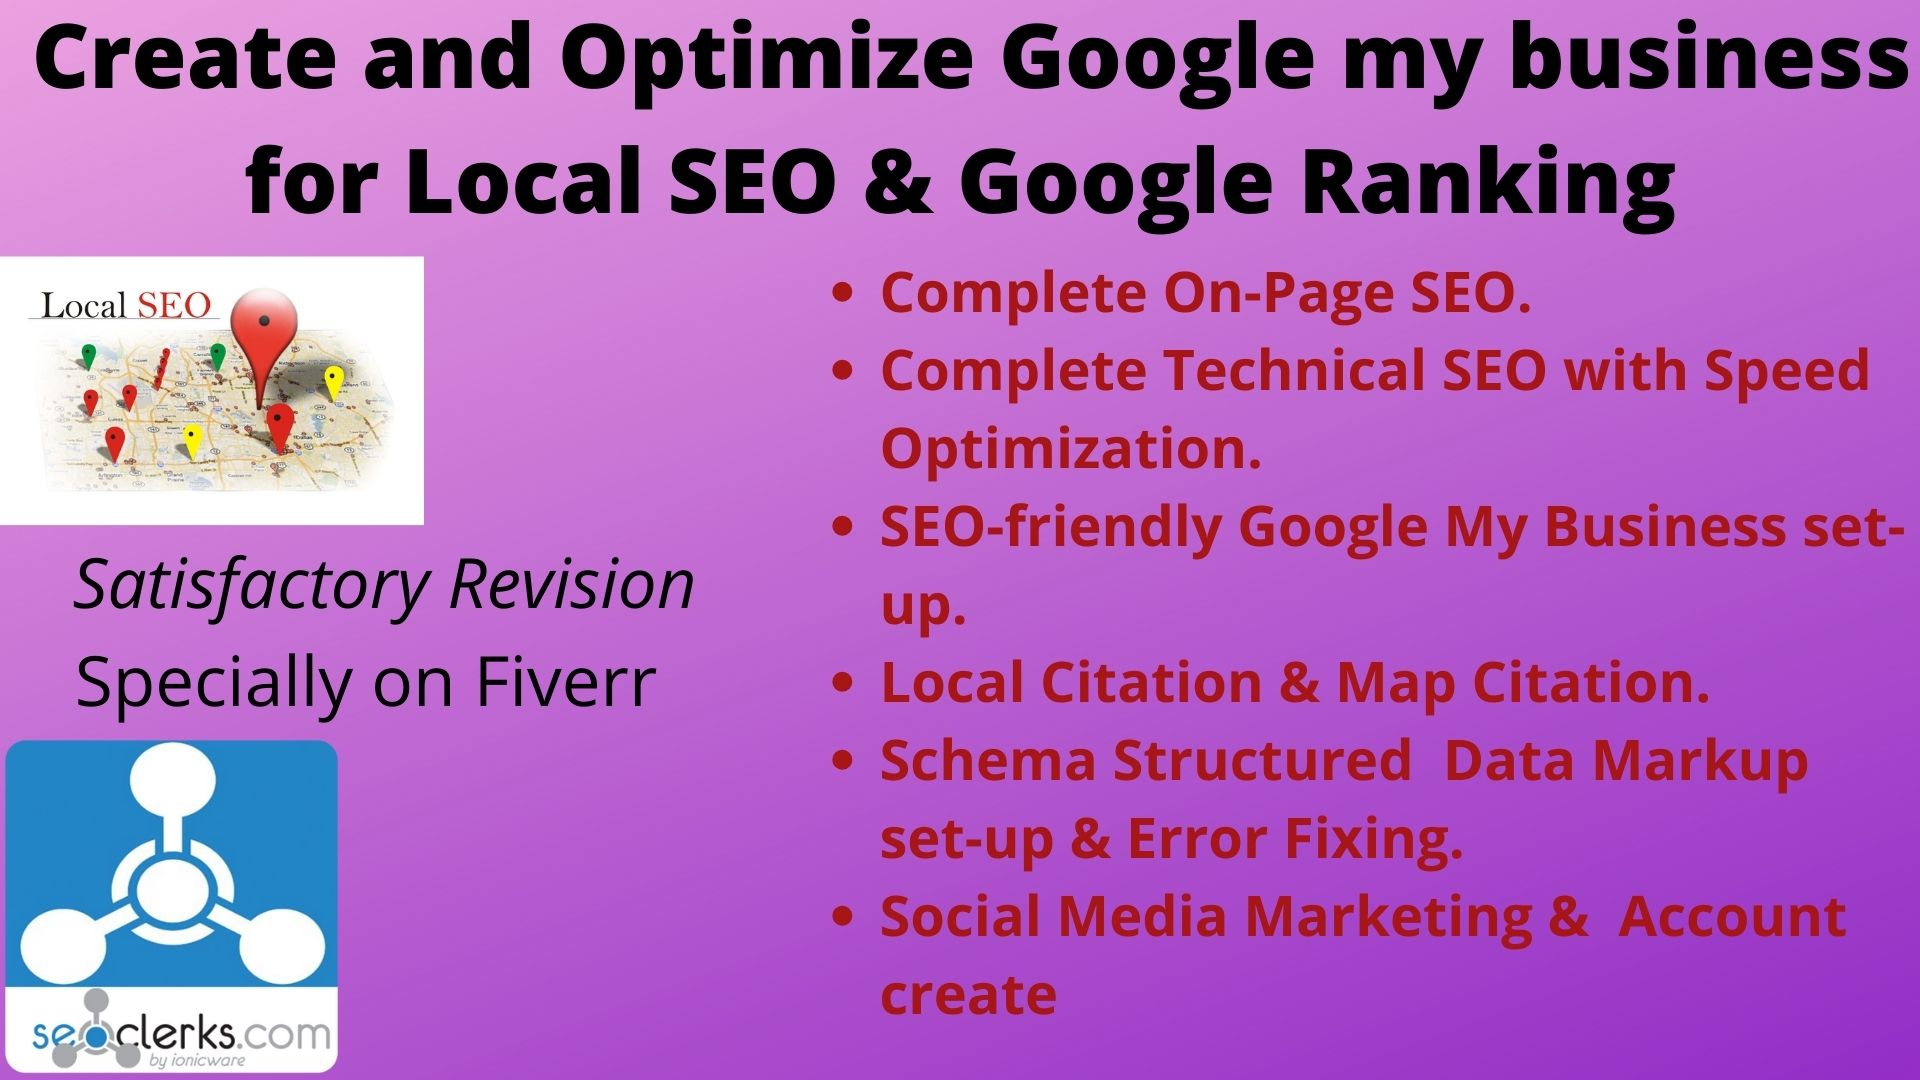 I will Create and Optimize gmb for local SEO & Google Ranking